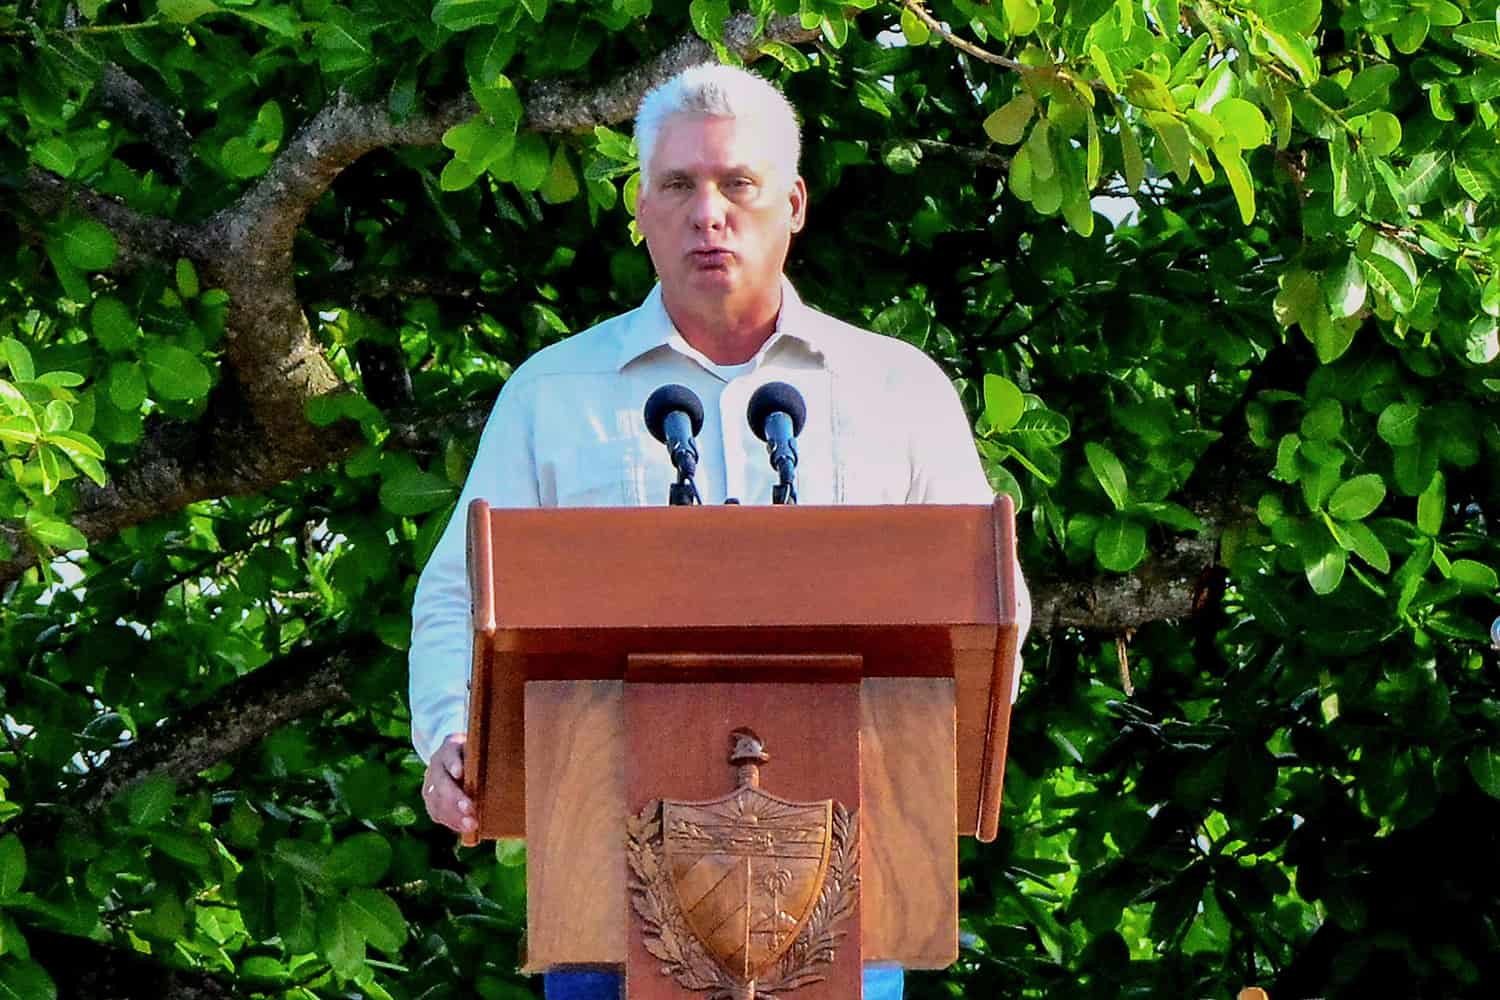 Cuban President Miguel Diaz-Canel, delivers a speech during the celebrations for the 150th anniversary of the beginning of the independence war against Spain, in La Demajagua farm, Manzanillo, Granma province some 750 kilometers east of Havana, on October 10, 2018. (Photo by STR / AFP)